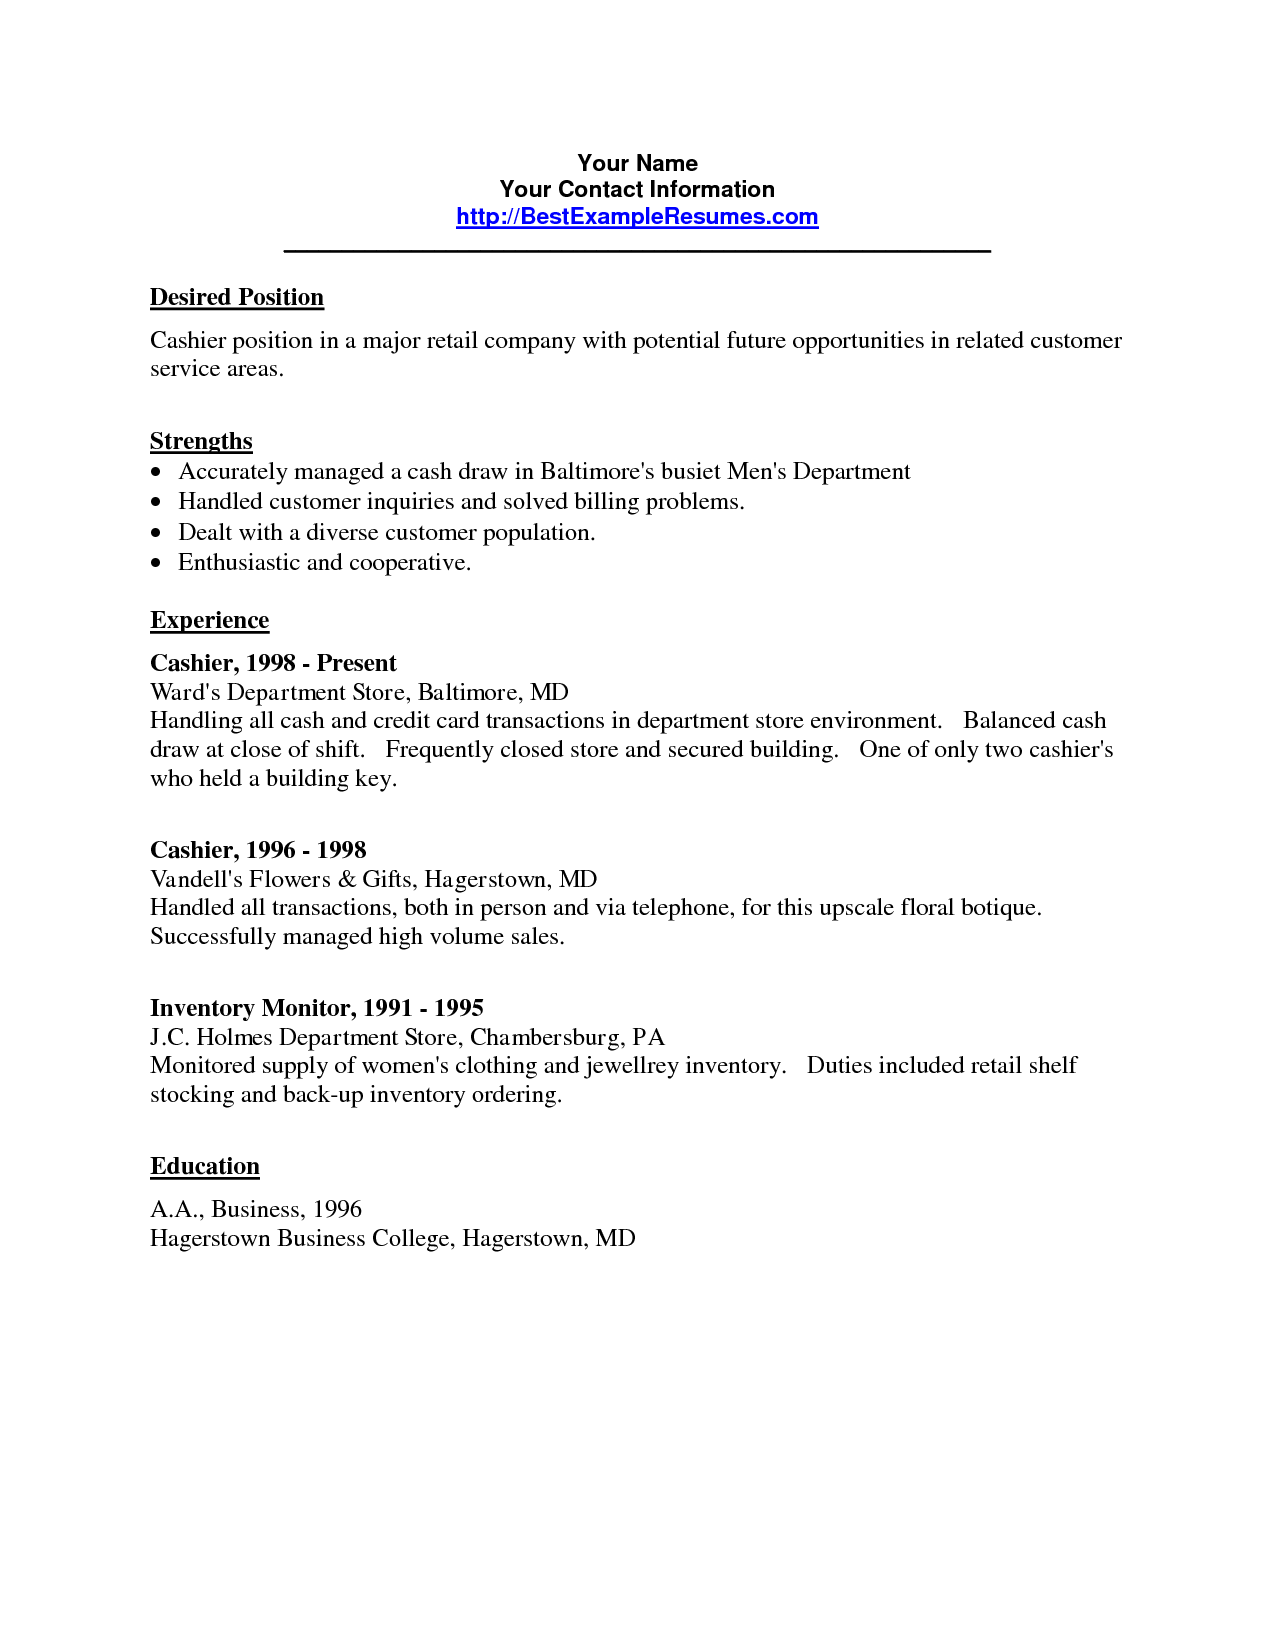 Cashier Duties Resume Job Resume Sample Cashier Examples For Application Impressive